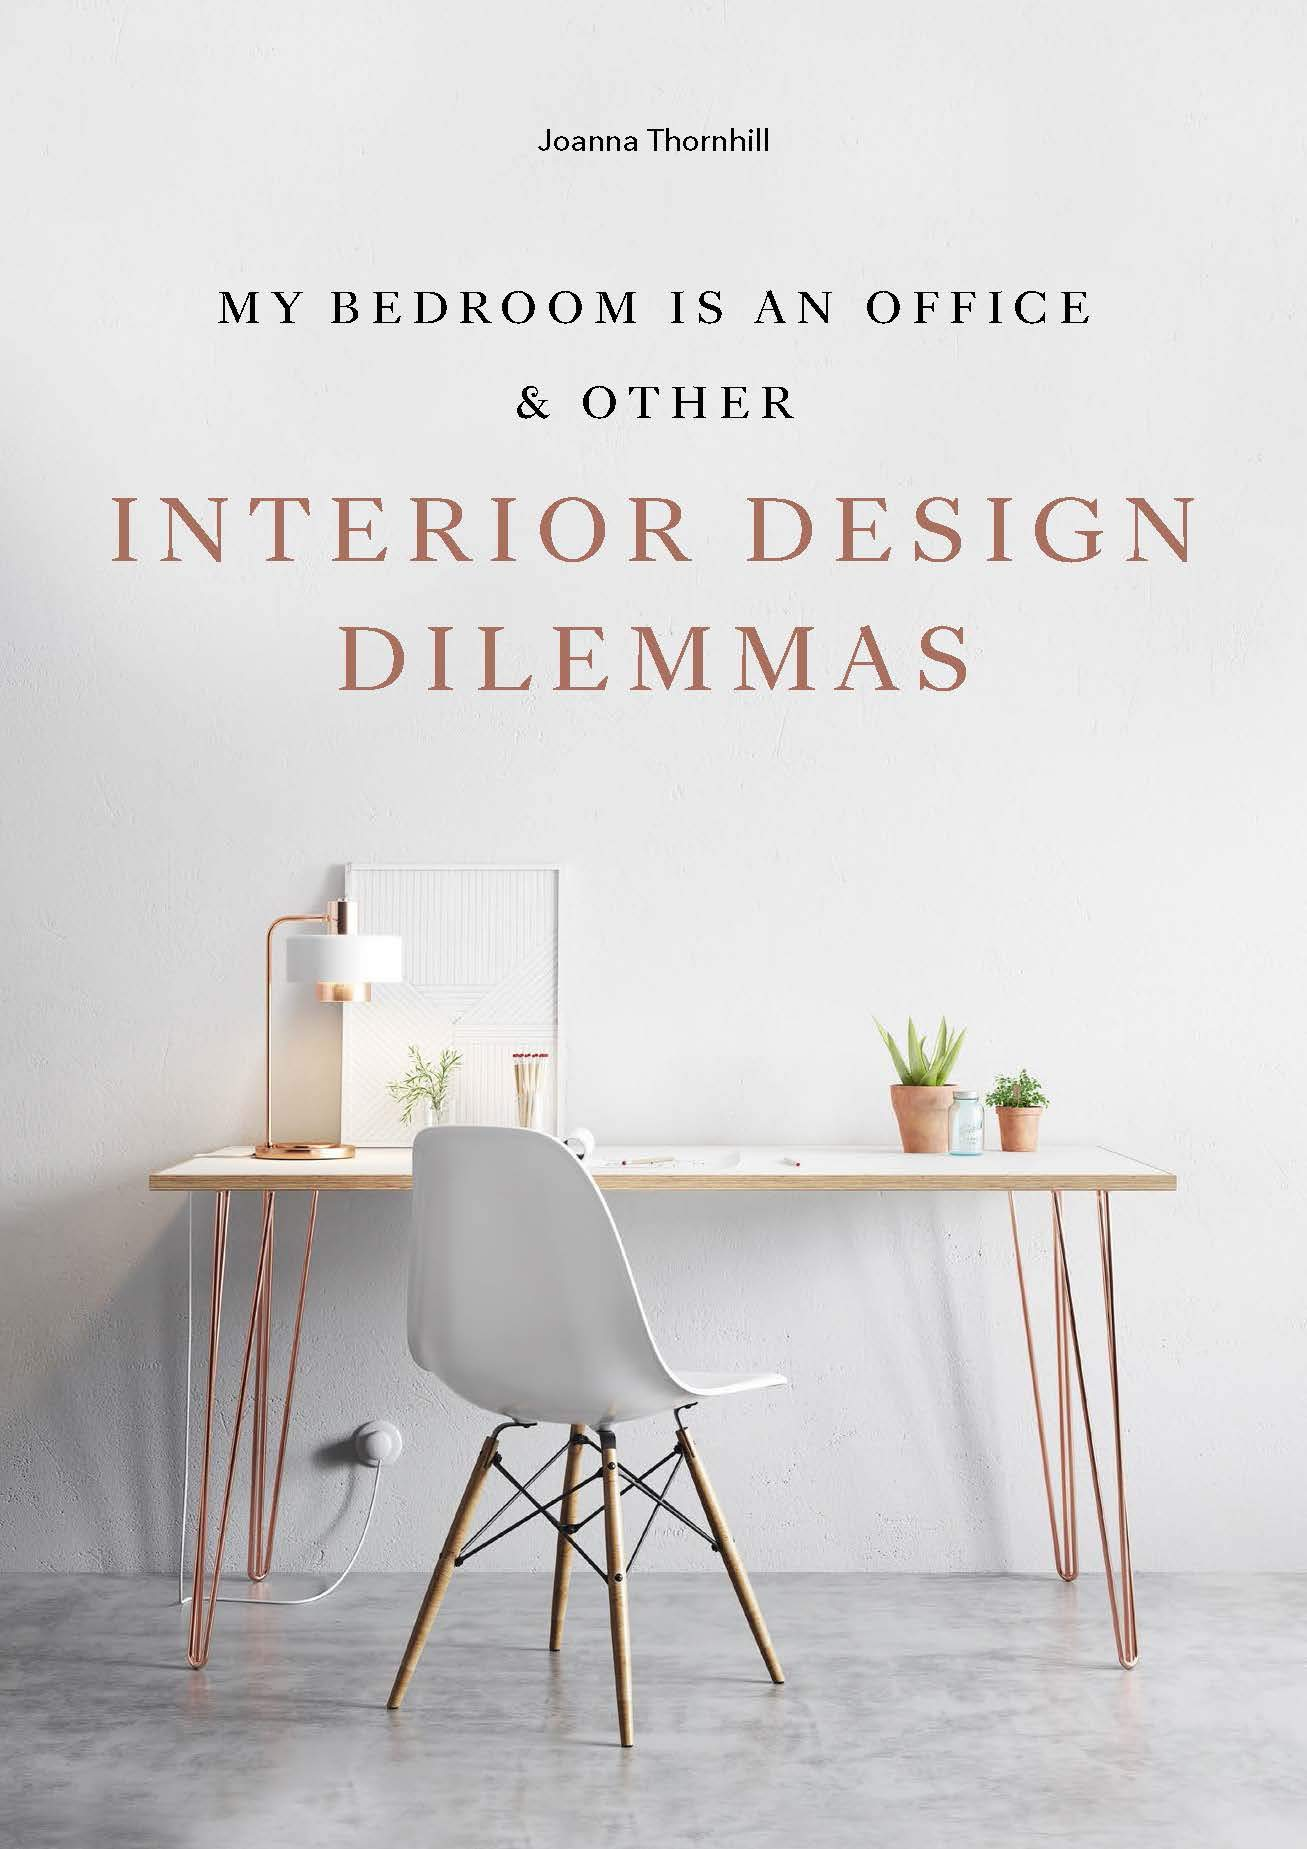 My Bedroom Is An Office Other Interior Design Dilemmas Amazon De Thornhill Joanna Fremdsprachige Bucher